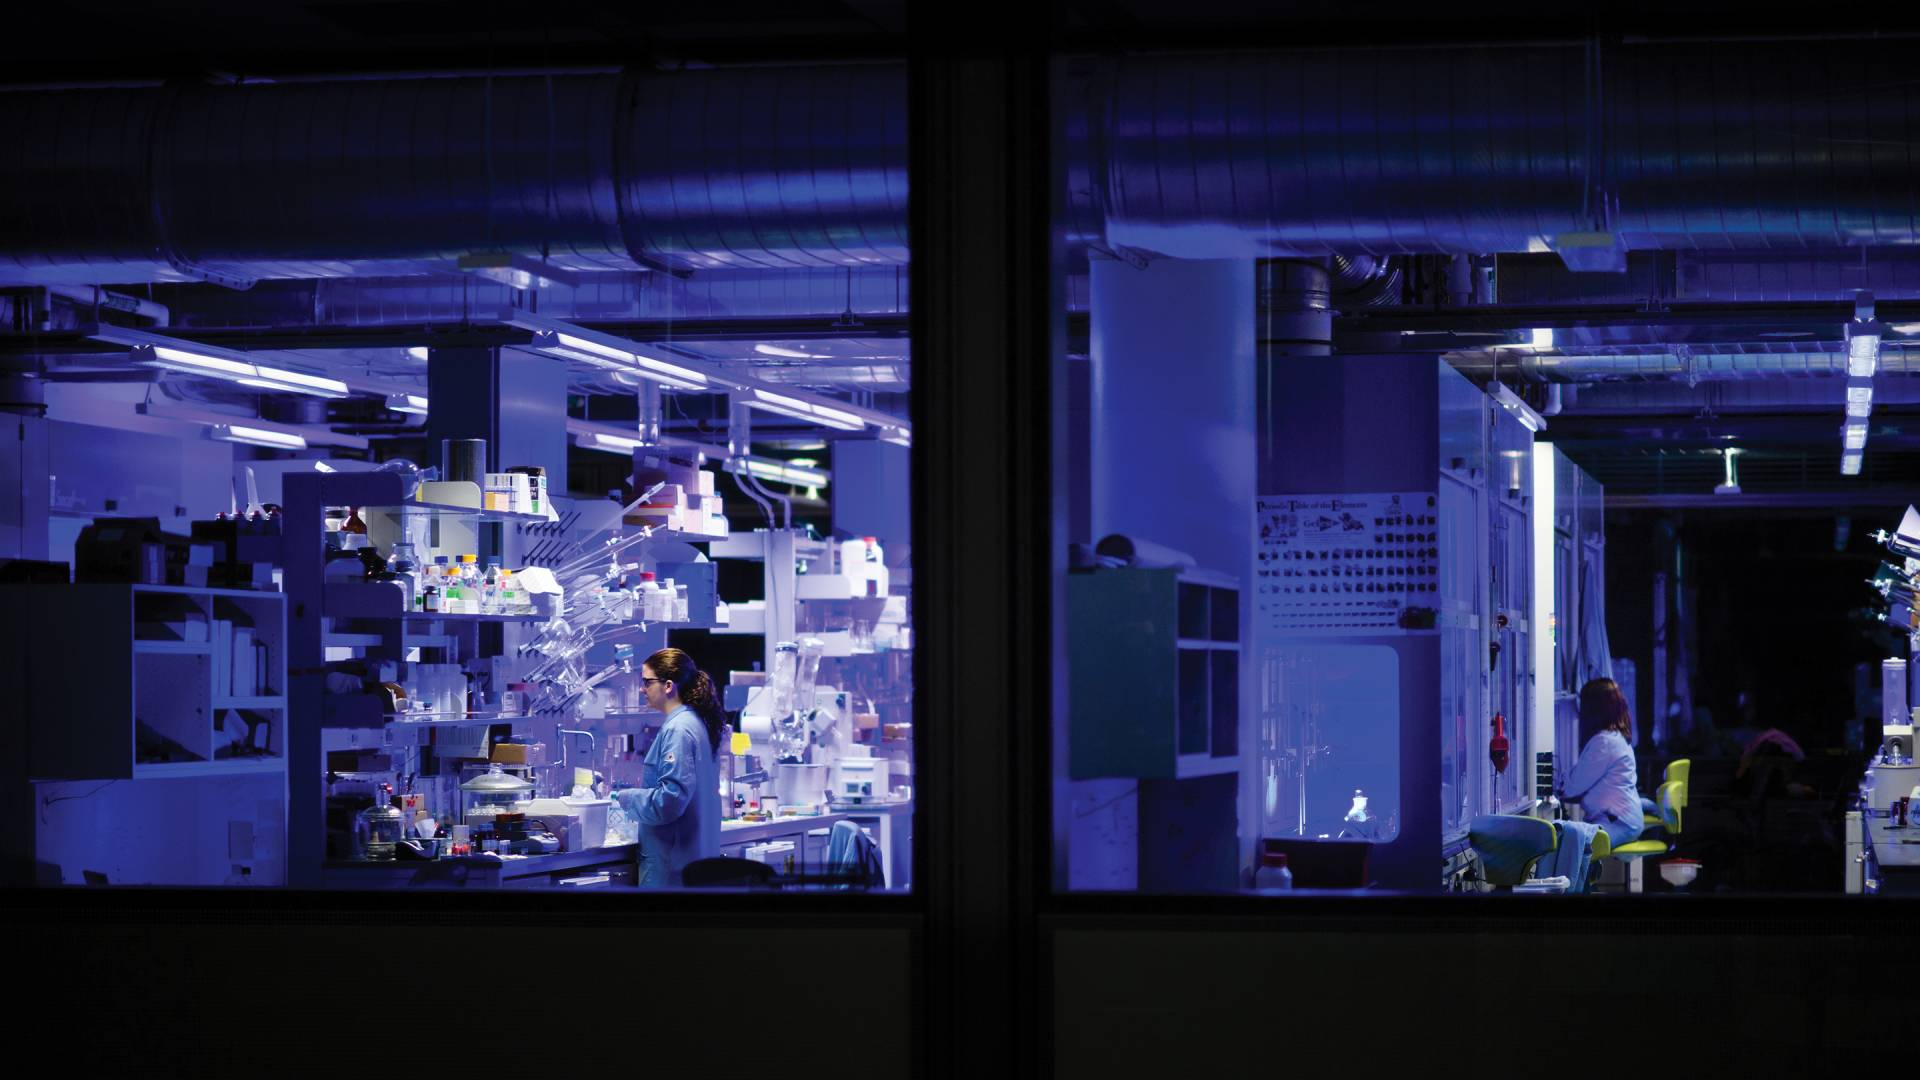 Late at night in Princeton's Frick Chemistry Laboratory, blue LED lights work overtime to catalyze new chemical reactions.